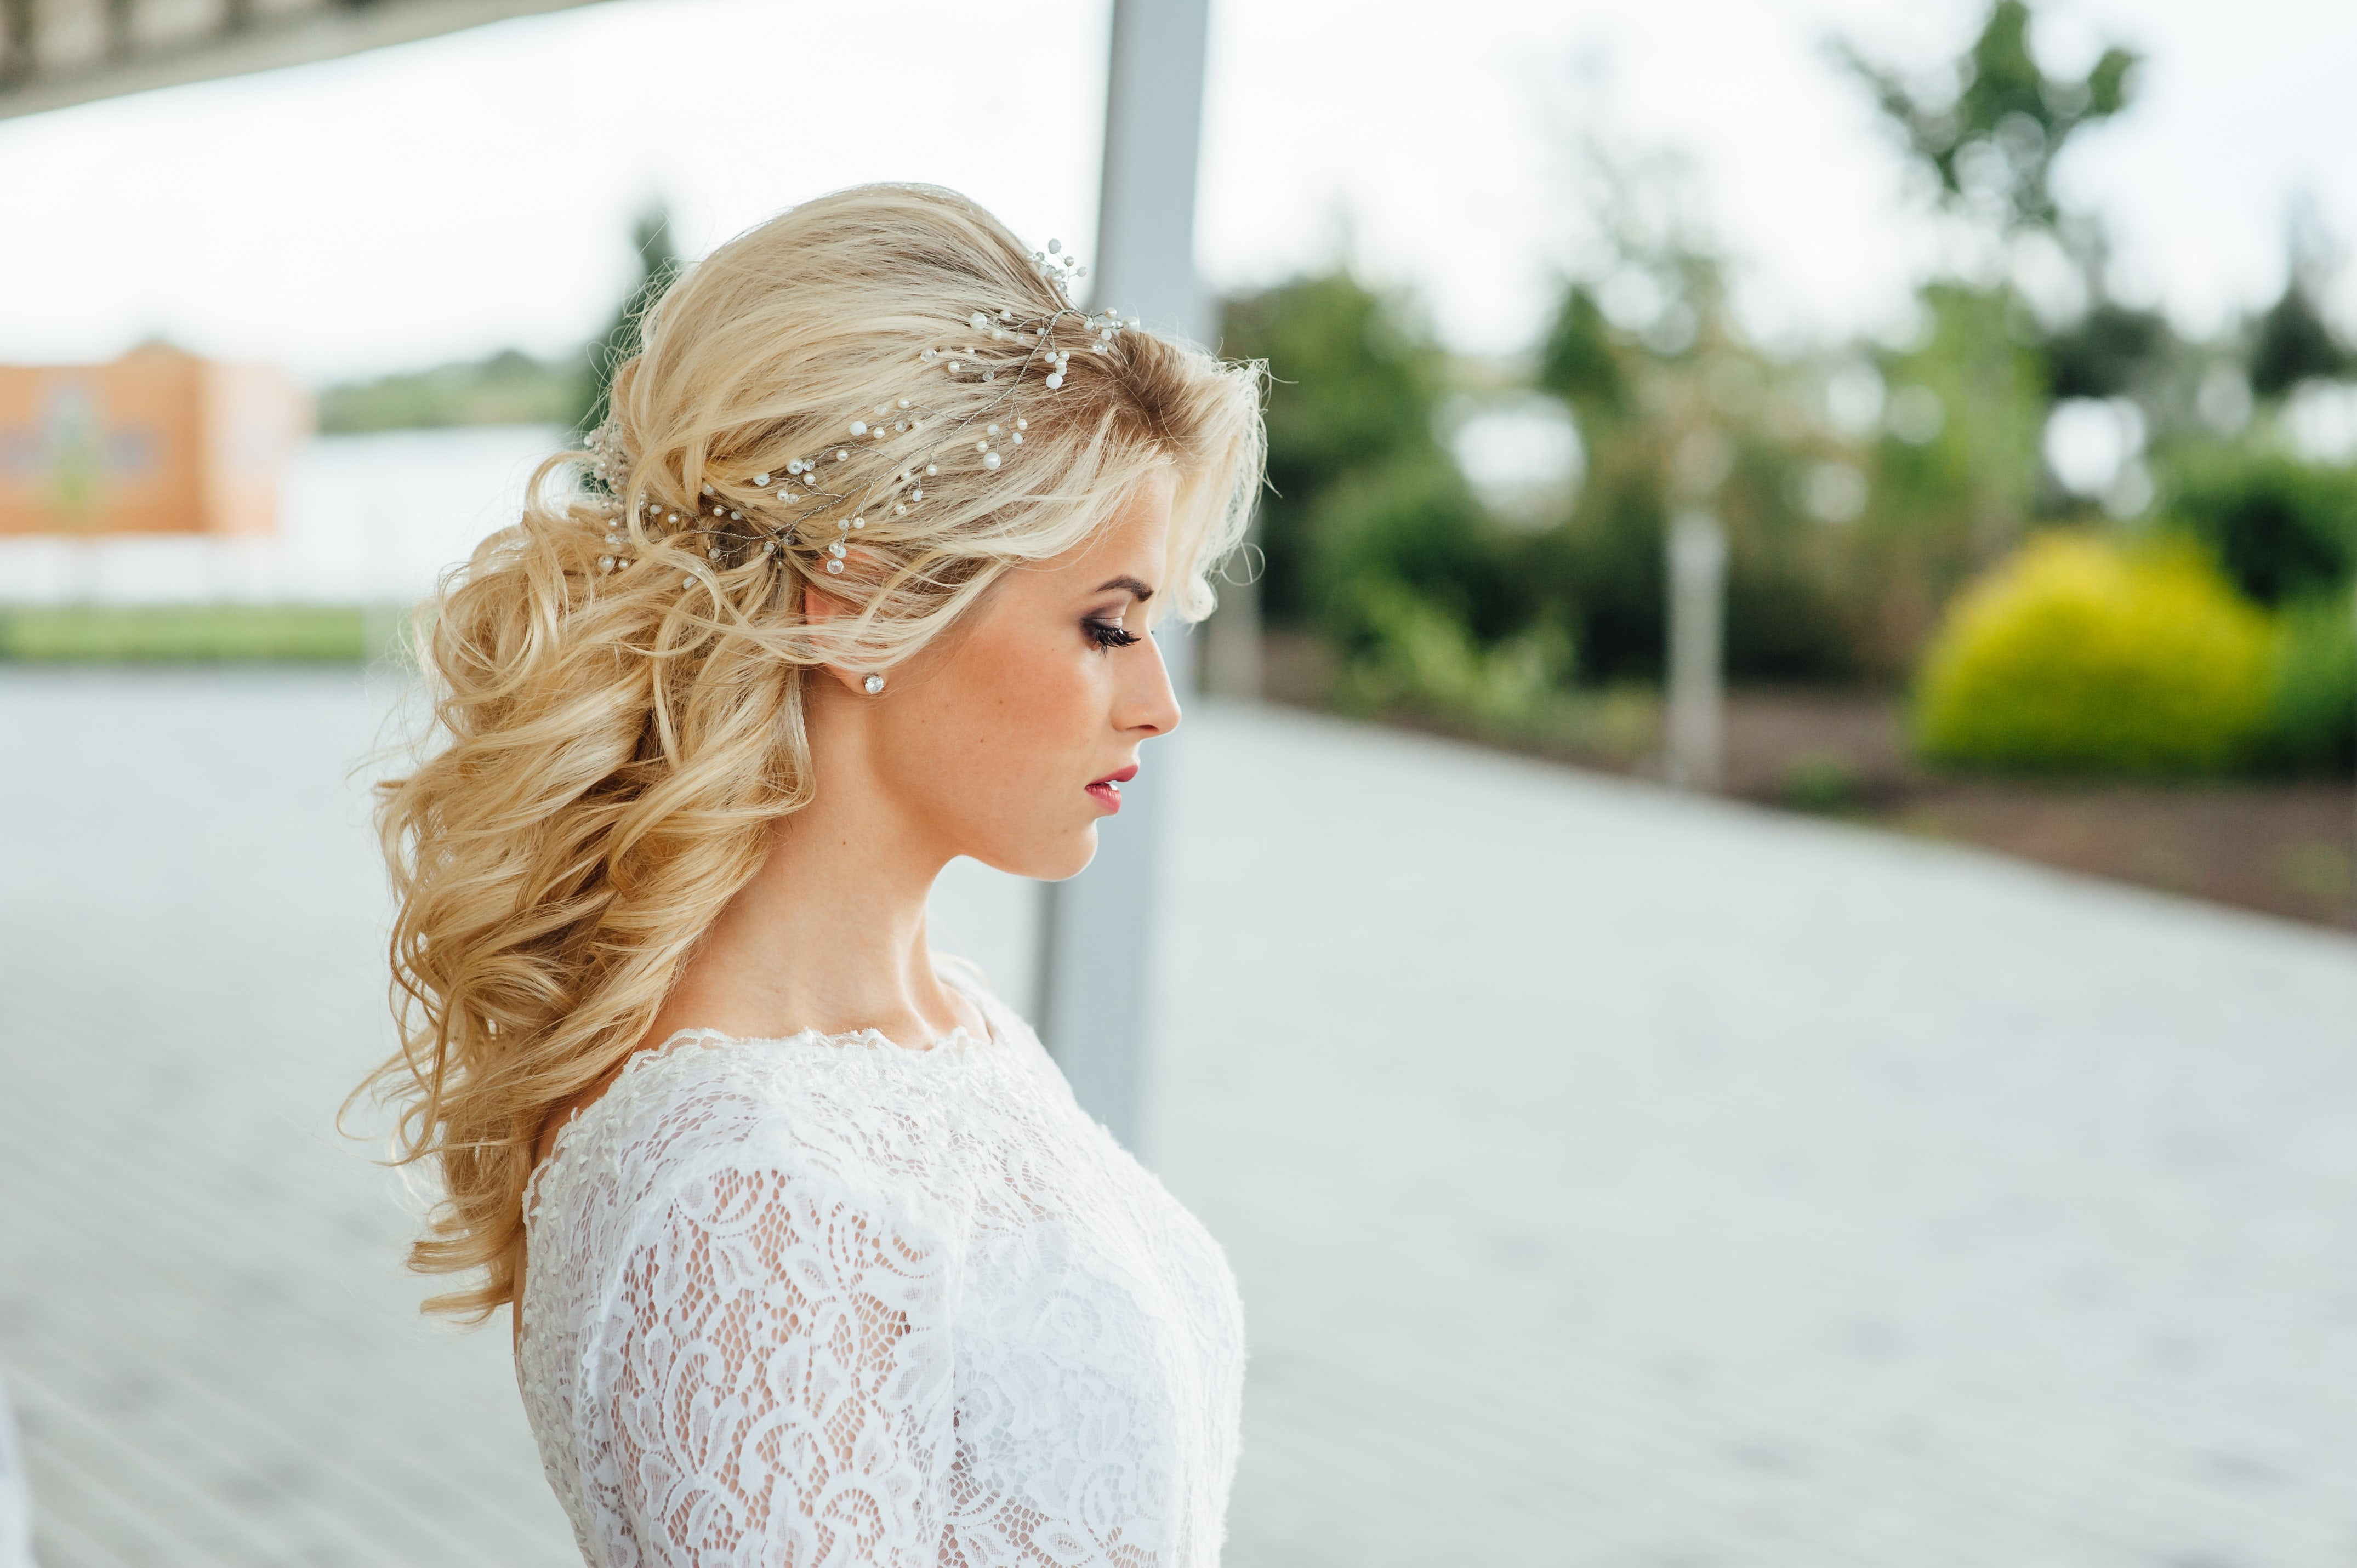 Elegant Down Hairstyles for Wedding Pics Design Ideas – Dievoon